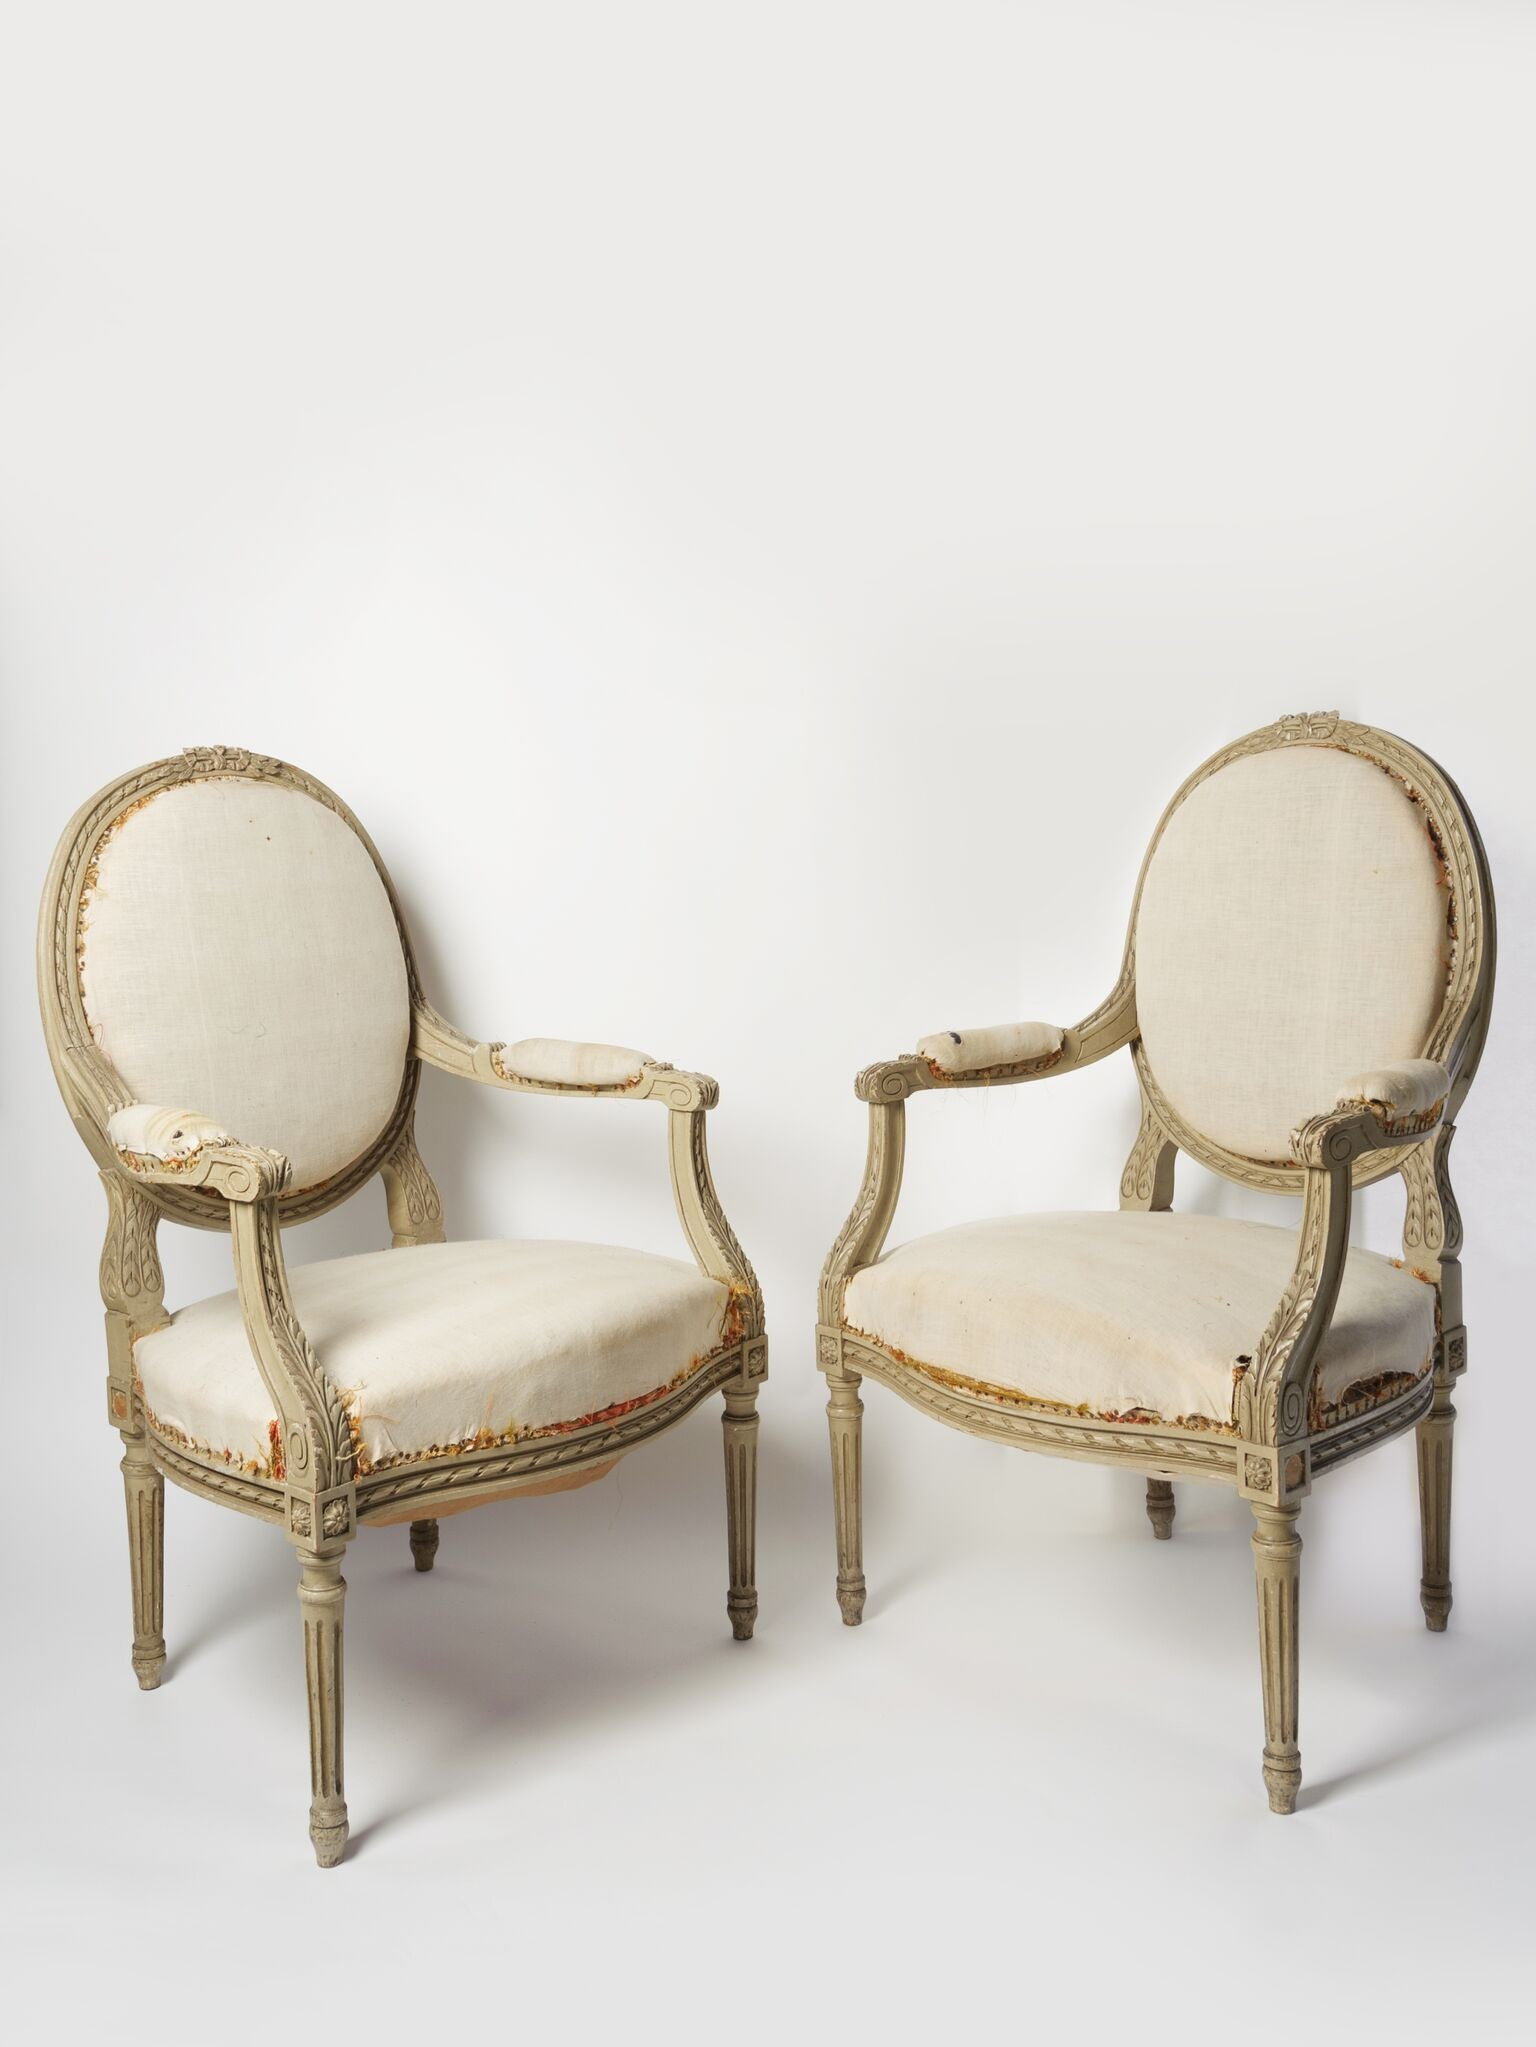 PAIR BEAUTIFUL ANTIQUE FRENCH LOUIS XVI CHAIRS ... - PAIR BEAUTIFUL ANTIQUE FRENCH LOUIS XVI CHAIRS – Decorative Antiques UK